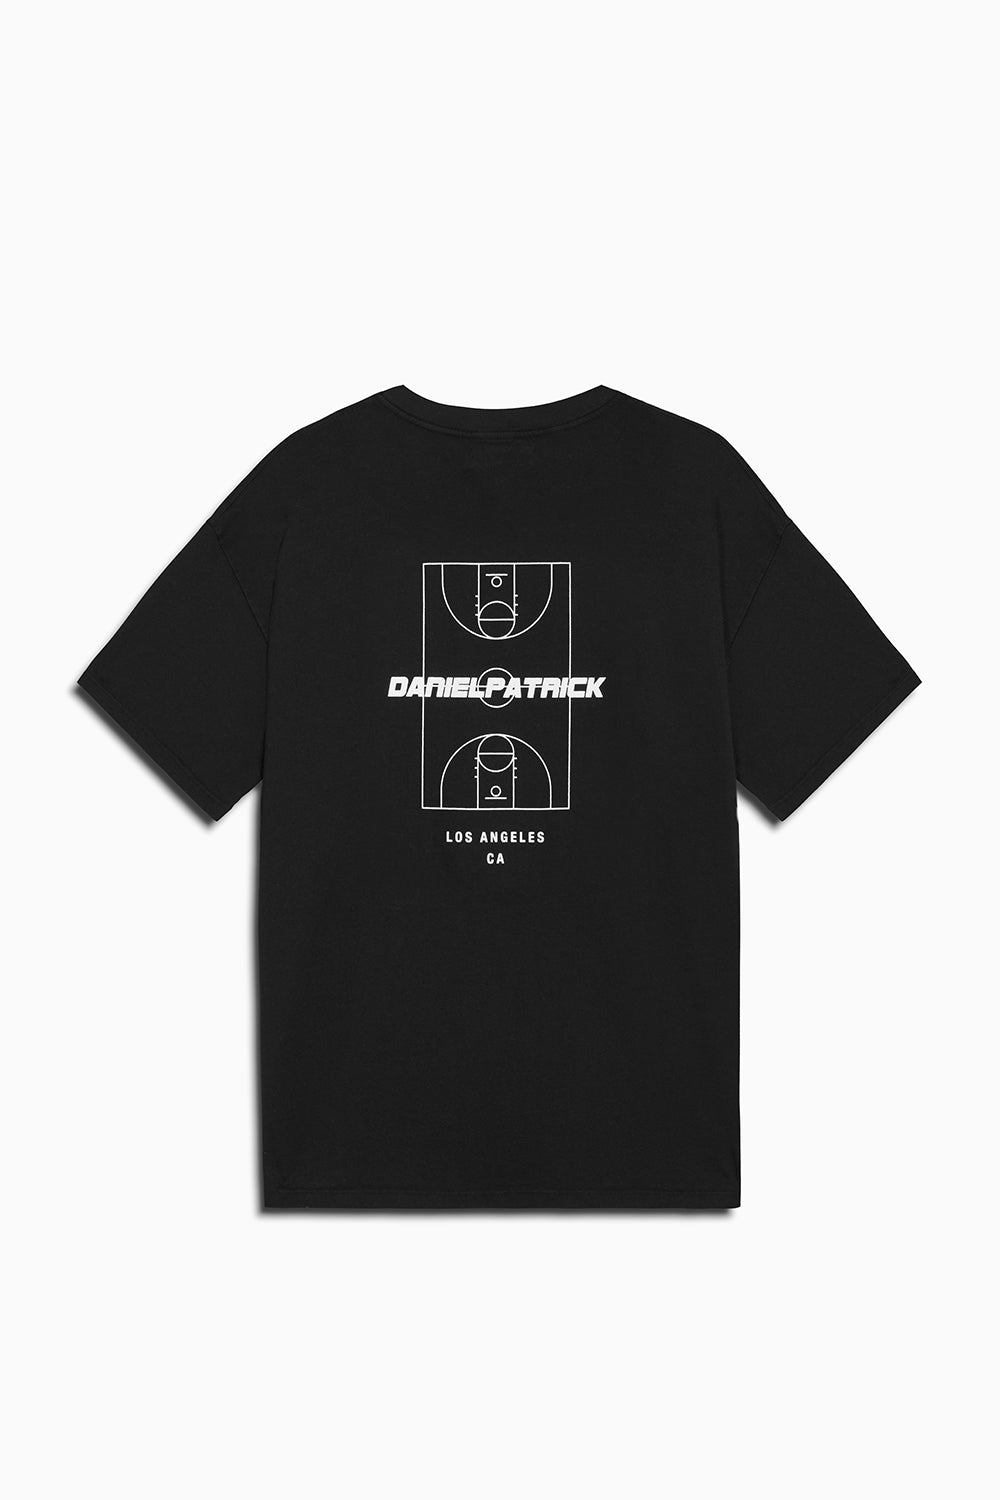 DP court tee in black by daniel patrick